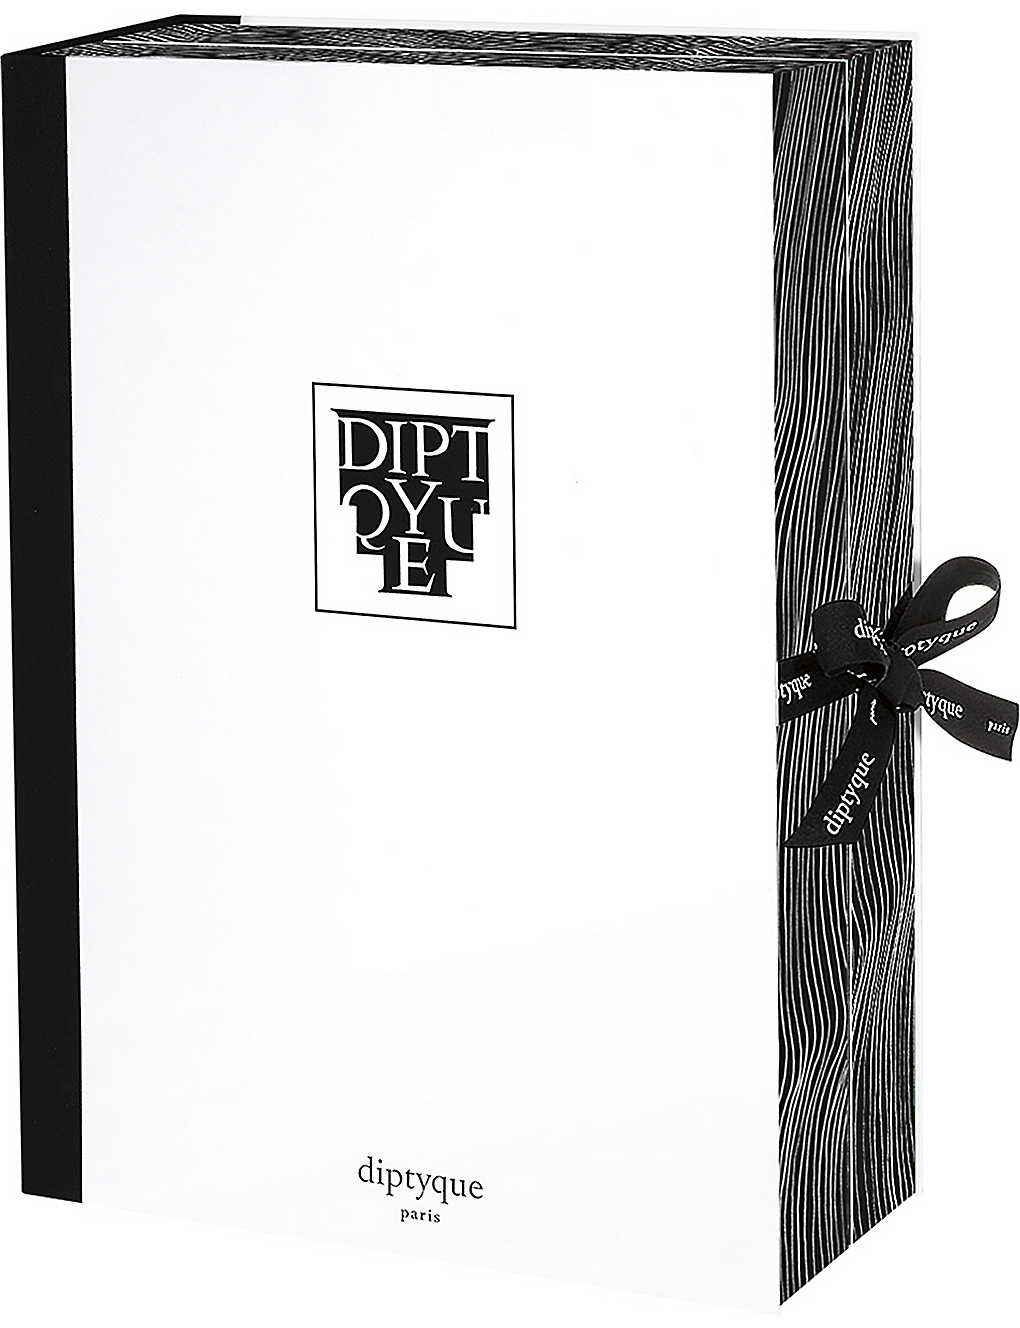 DIPTYQUE: Advent Calendar